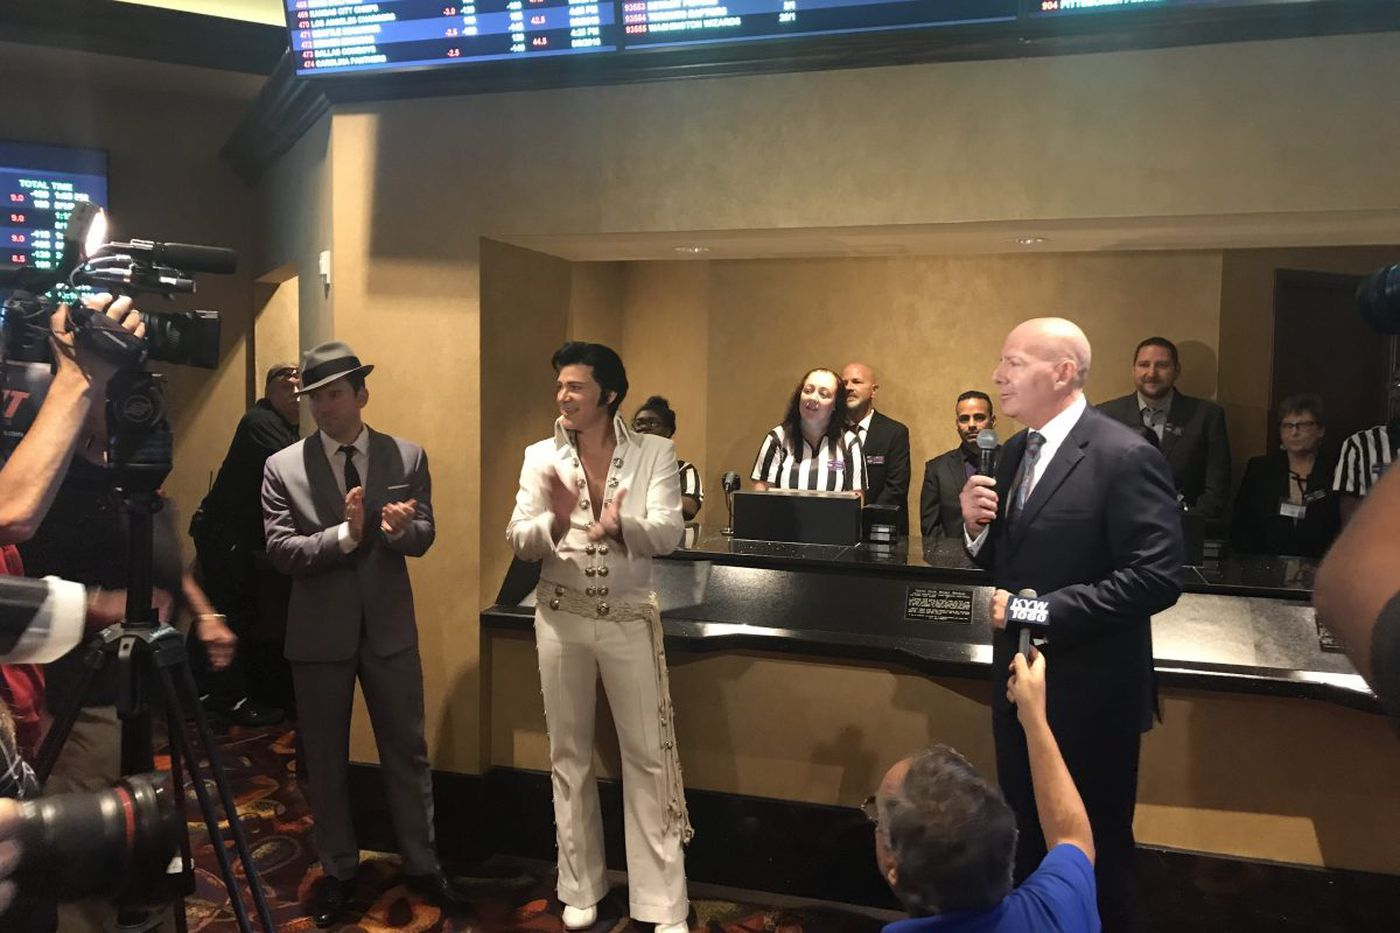 Elvis and Sinatra open Harrah's Atlantic City's sportsbook with an L